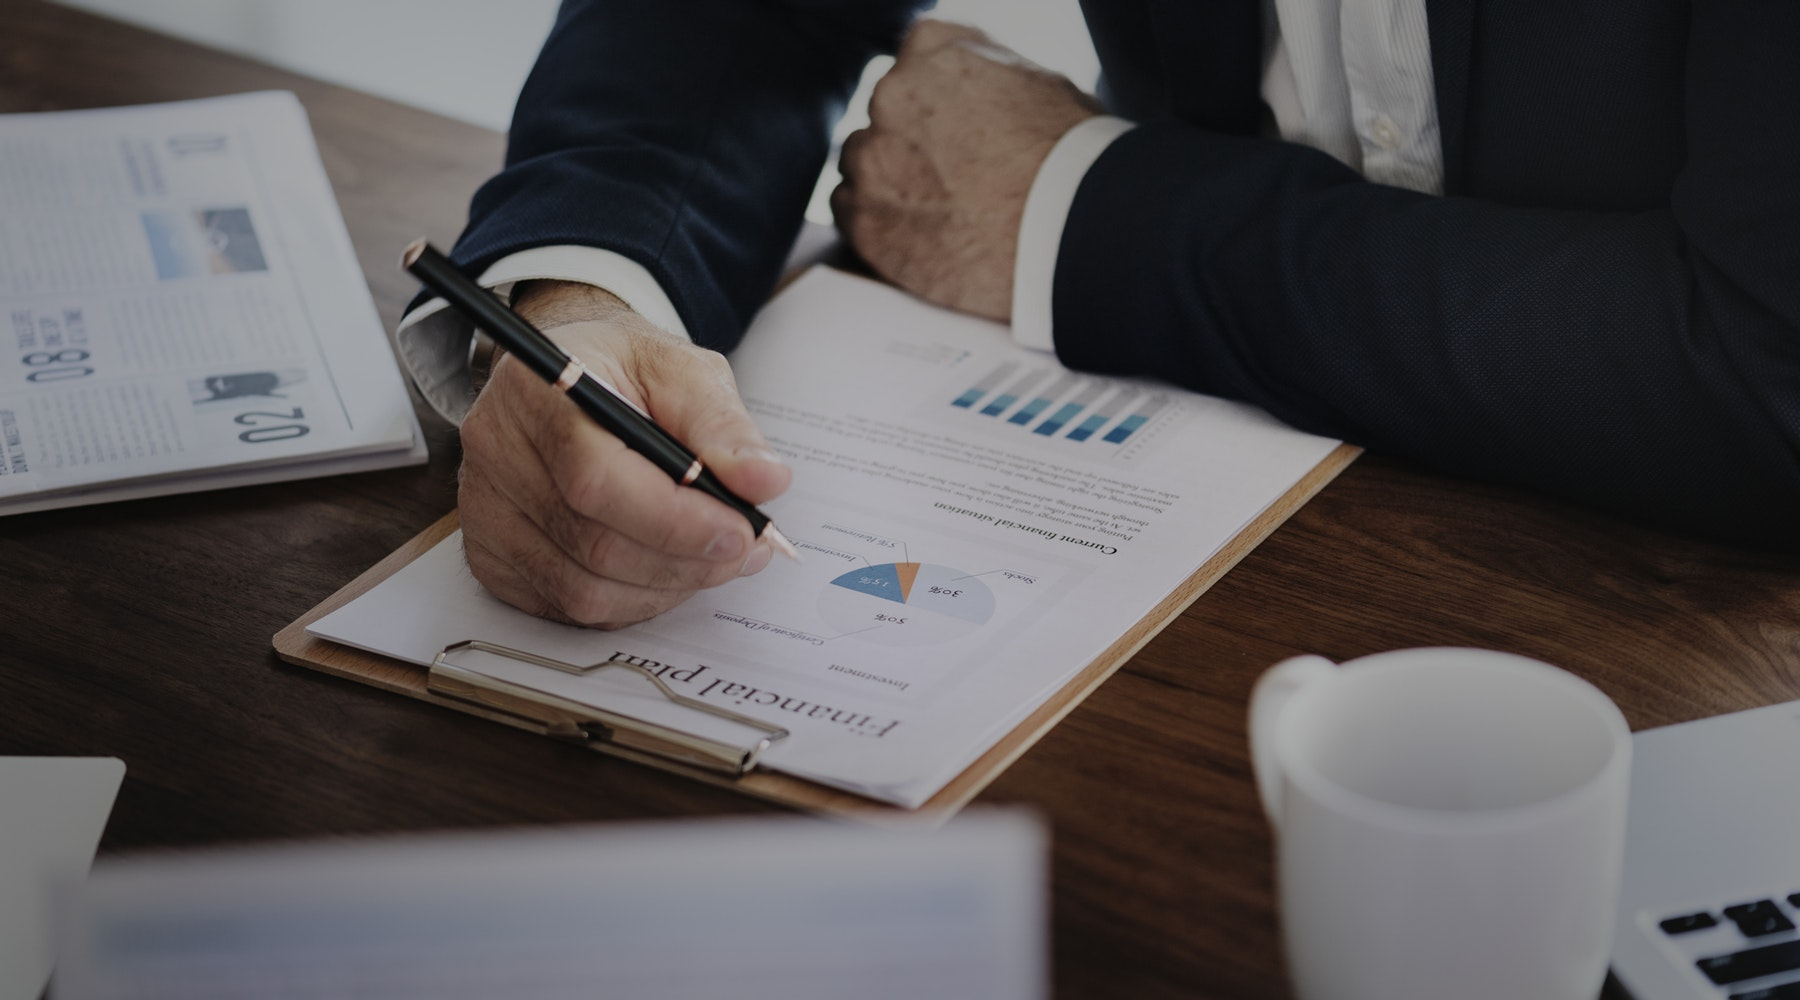 Introduction to Corporate Finance [Free Course]